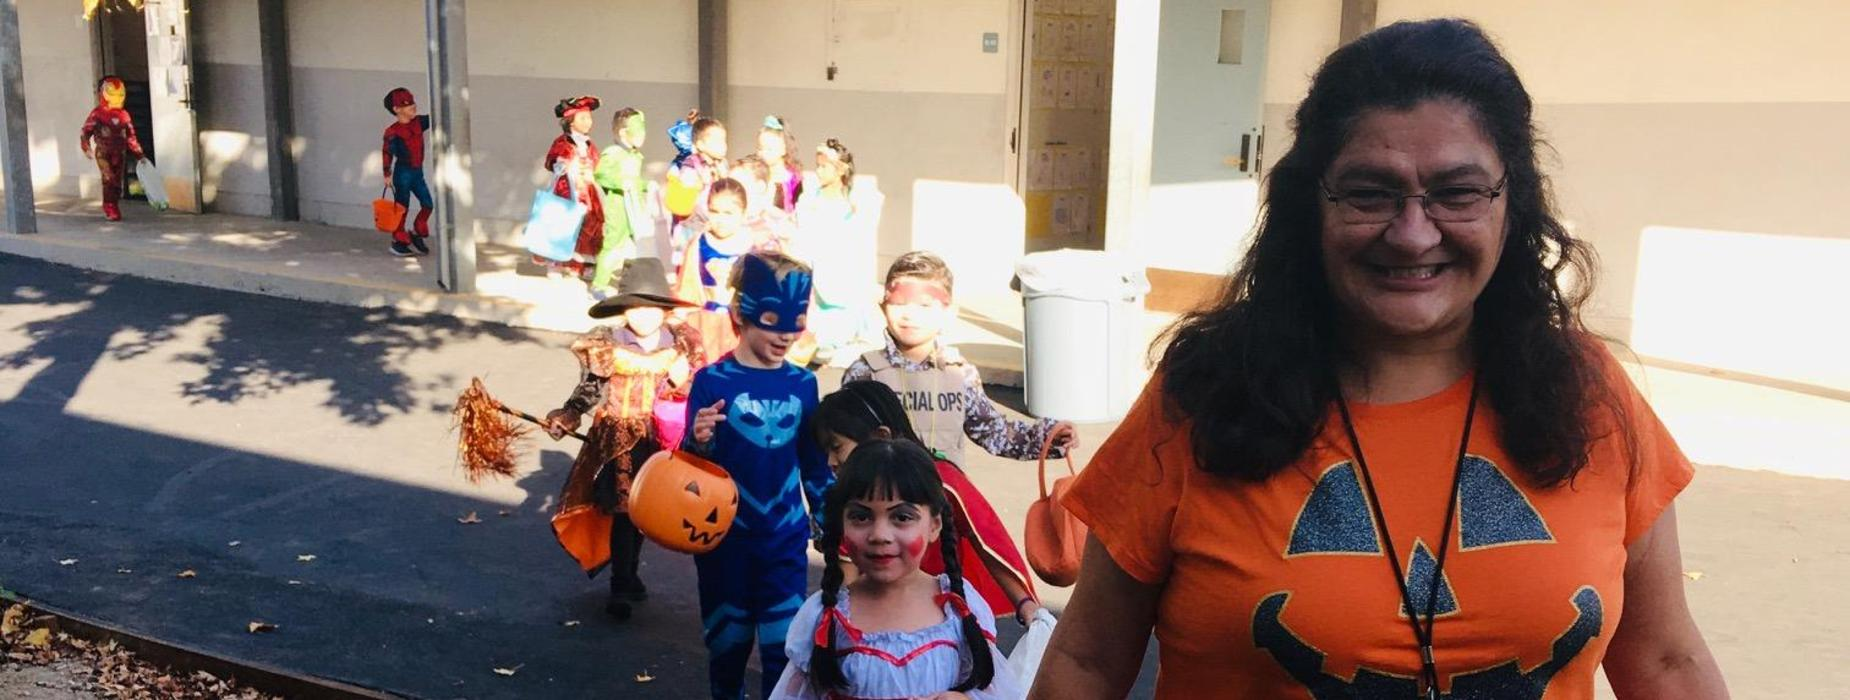 Ms. Mendoza and class during Halloween